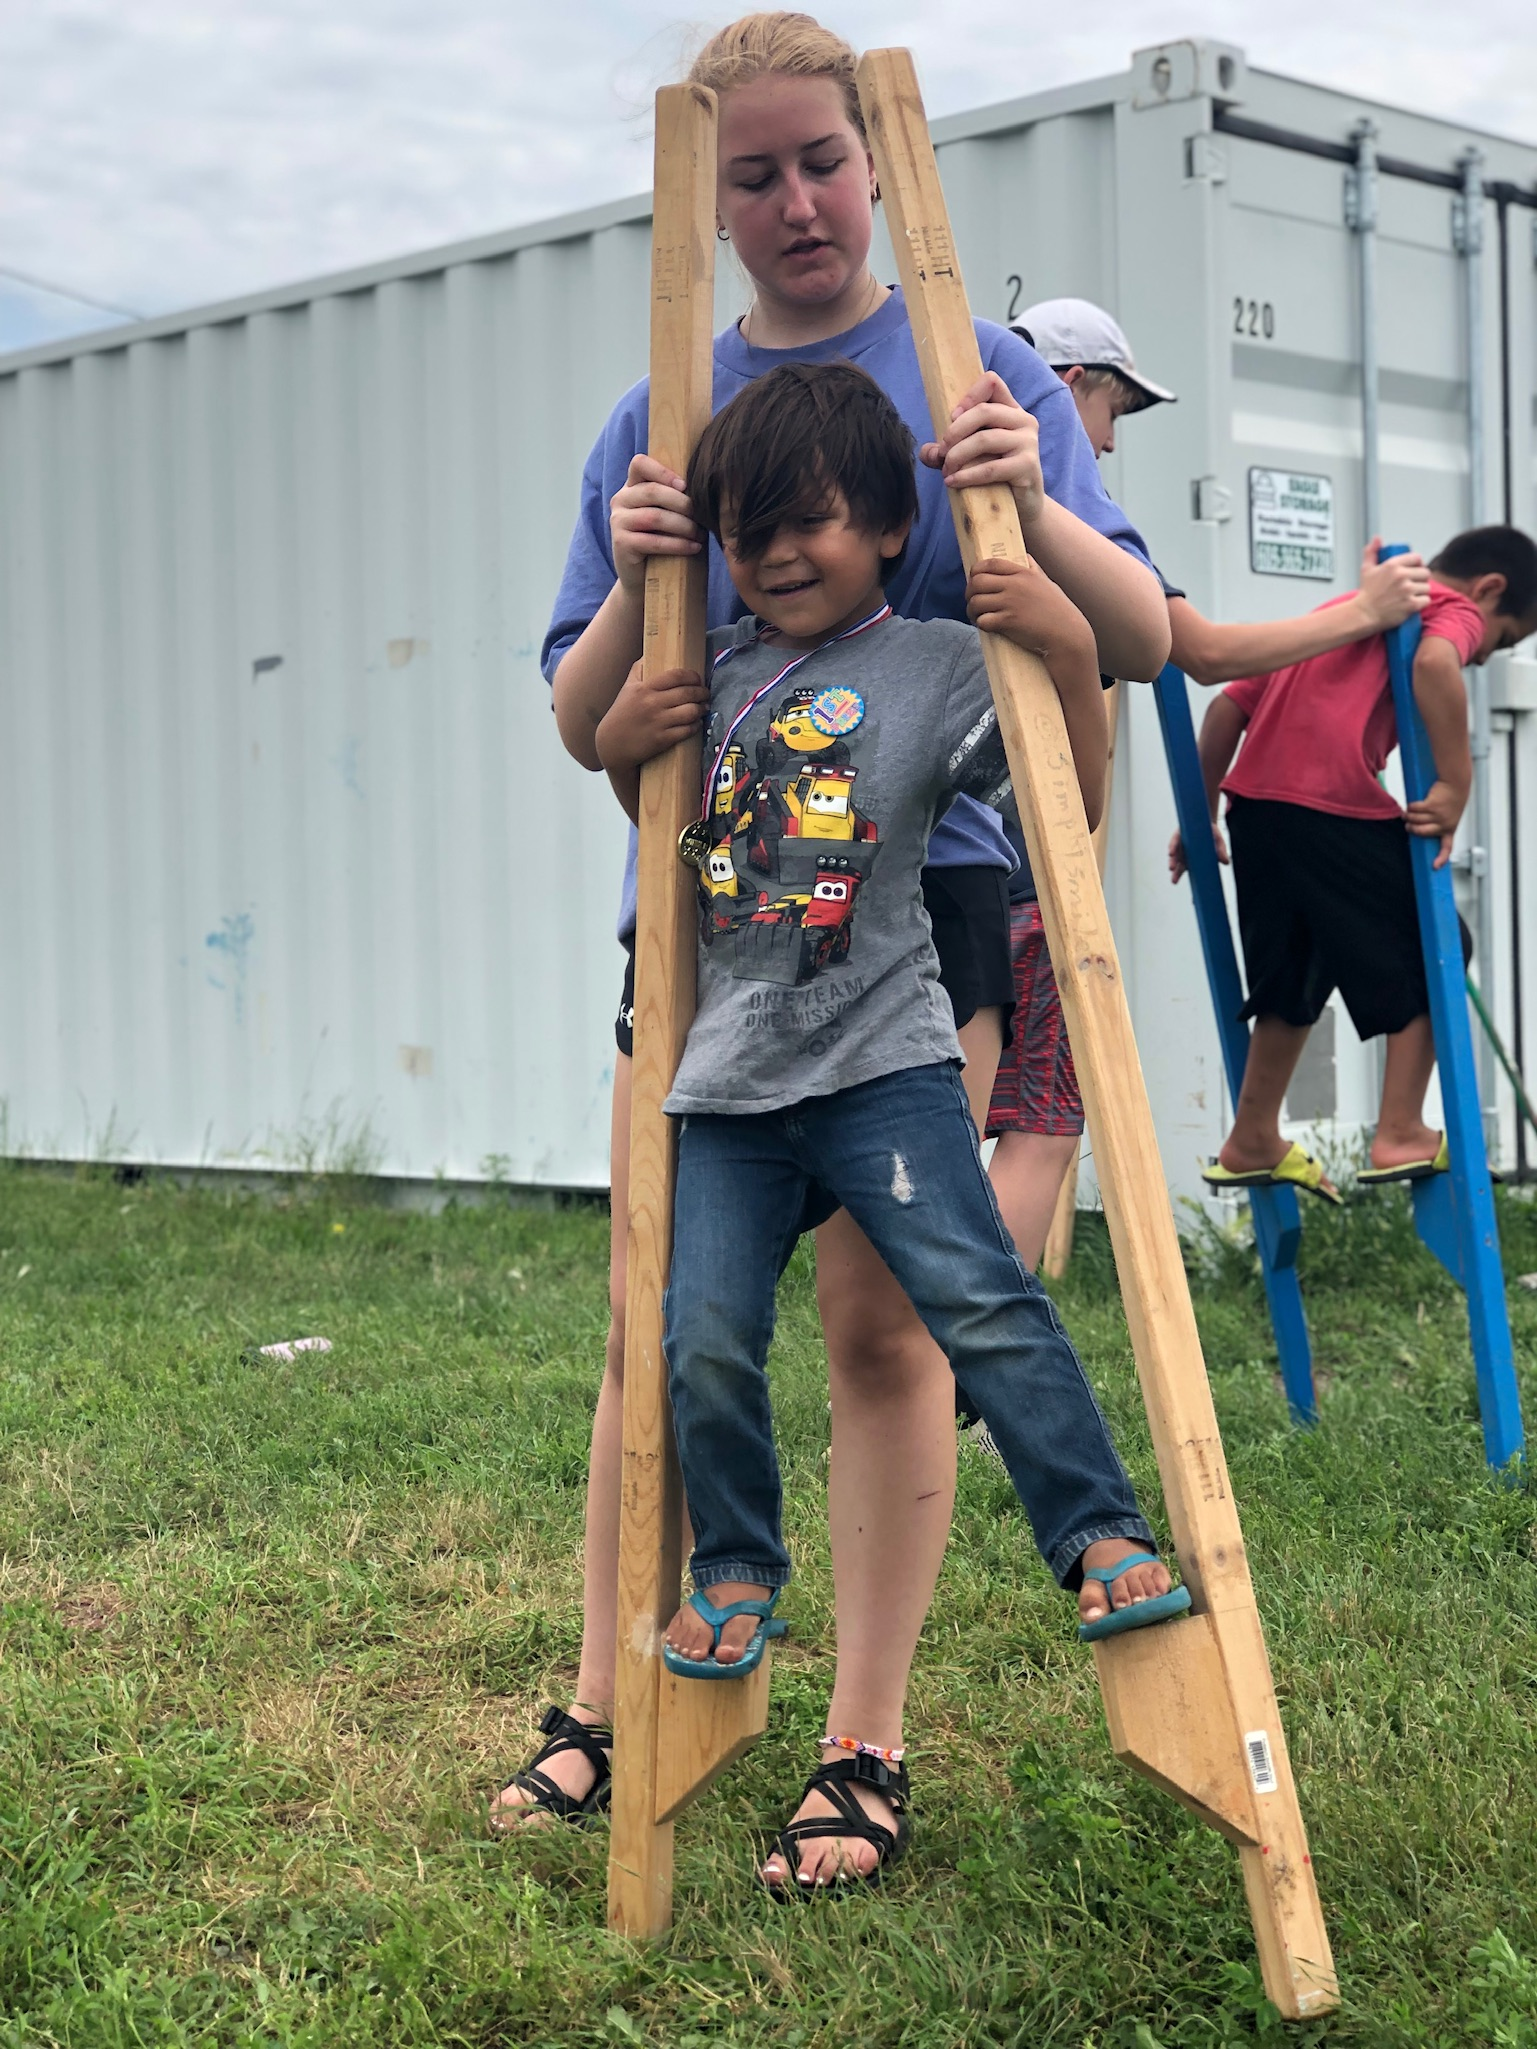 Teambuilding  and having fun at Simply Smiles Summer Camp with our volunteers!